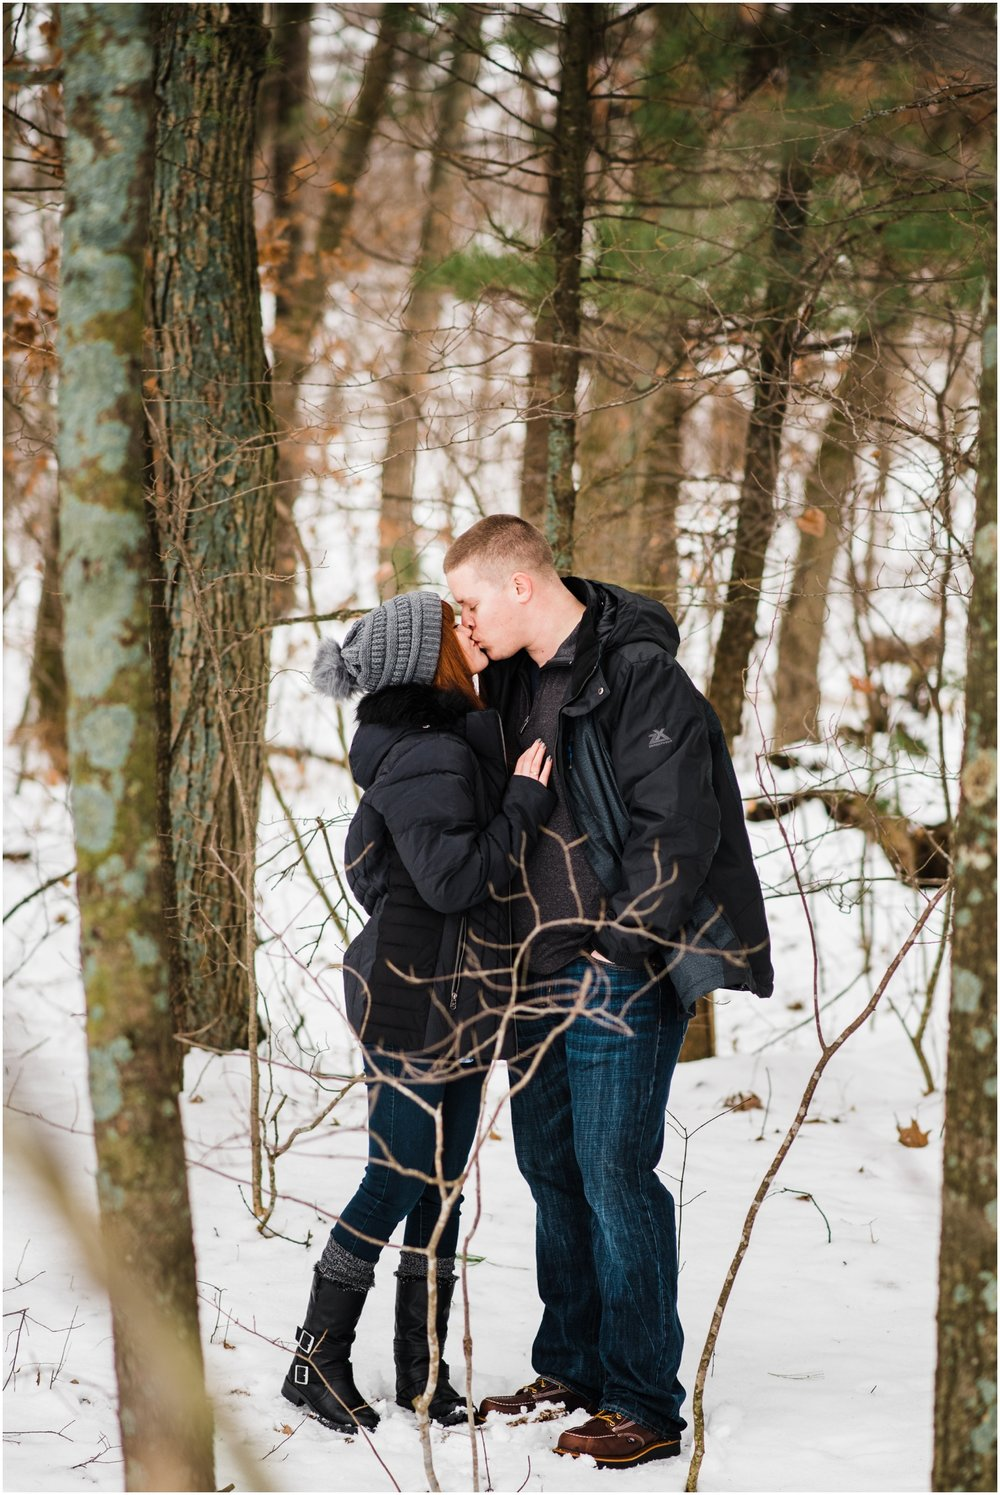 Devils-Lake-Baraboo-Wisconsin-Engagement-Photographer-Lindsey-And-Cody-Engaged-164.jpg